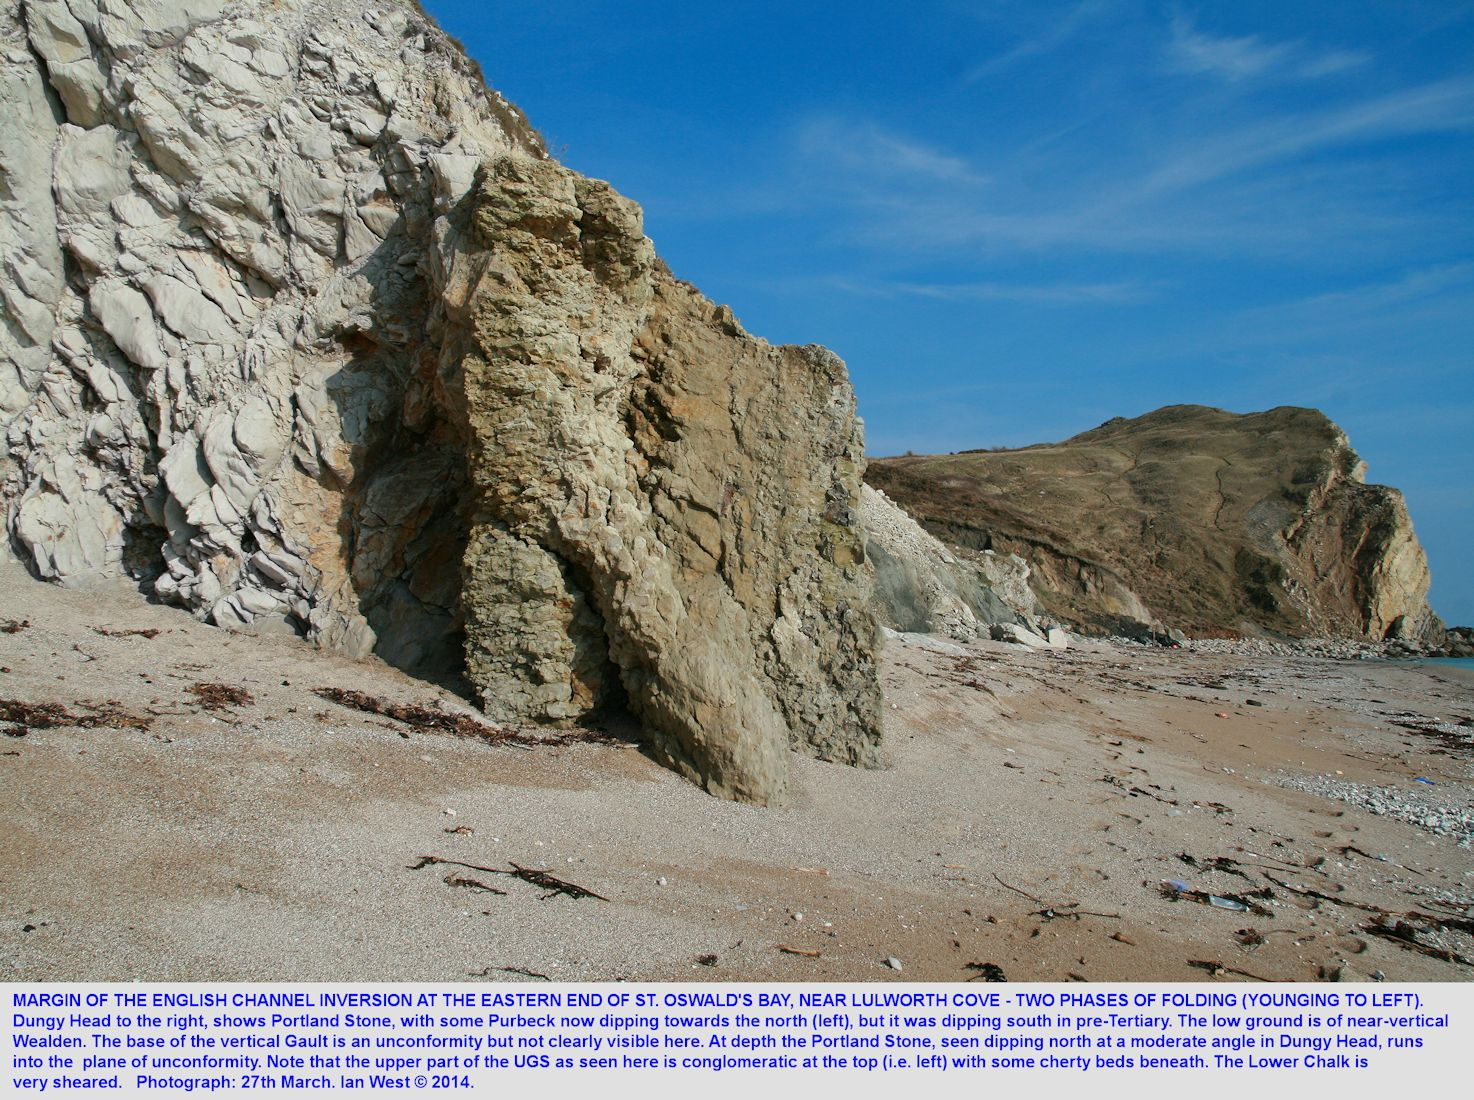 The Portland Stone, slumped Wealden, Gault and well-exposed Upper Greensand and sheared Lower Chalk at the eastern end of St. Oswald's Bay and at Dungy Head, near Lulworth Cove, unlabelled photograph, 27th March, 2014